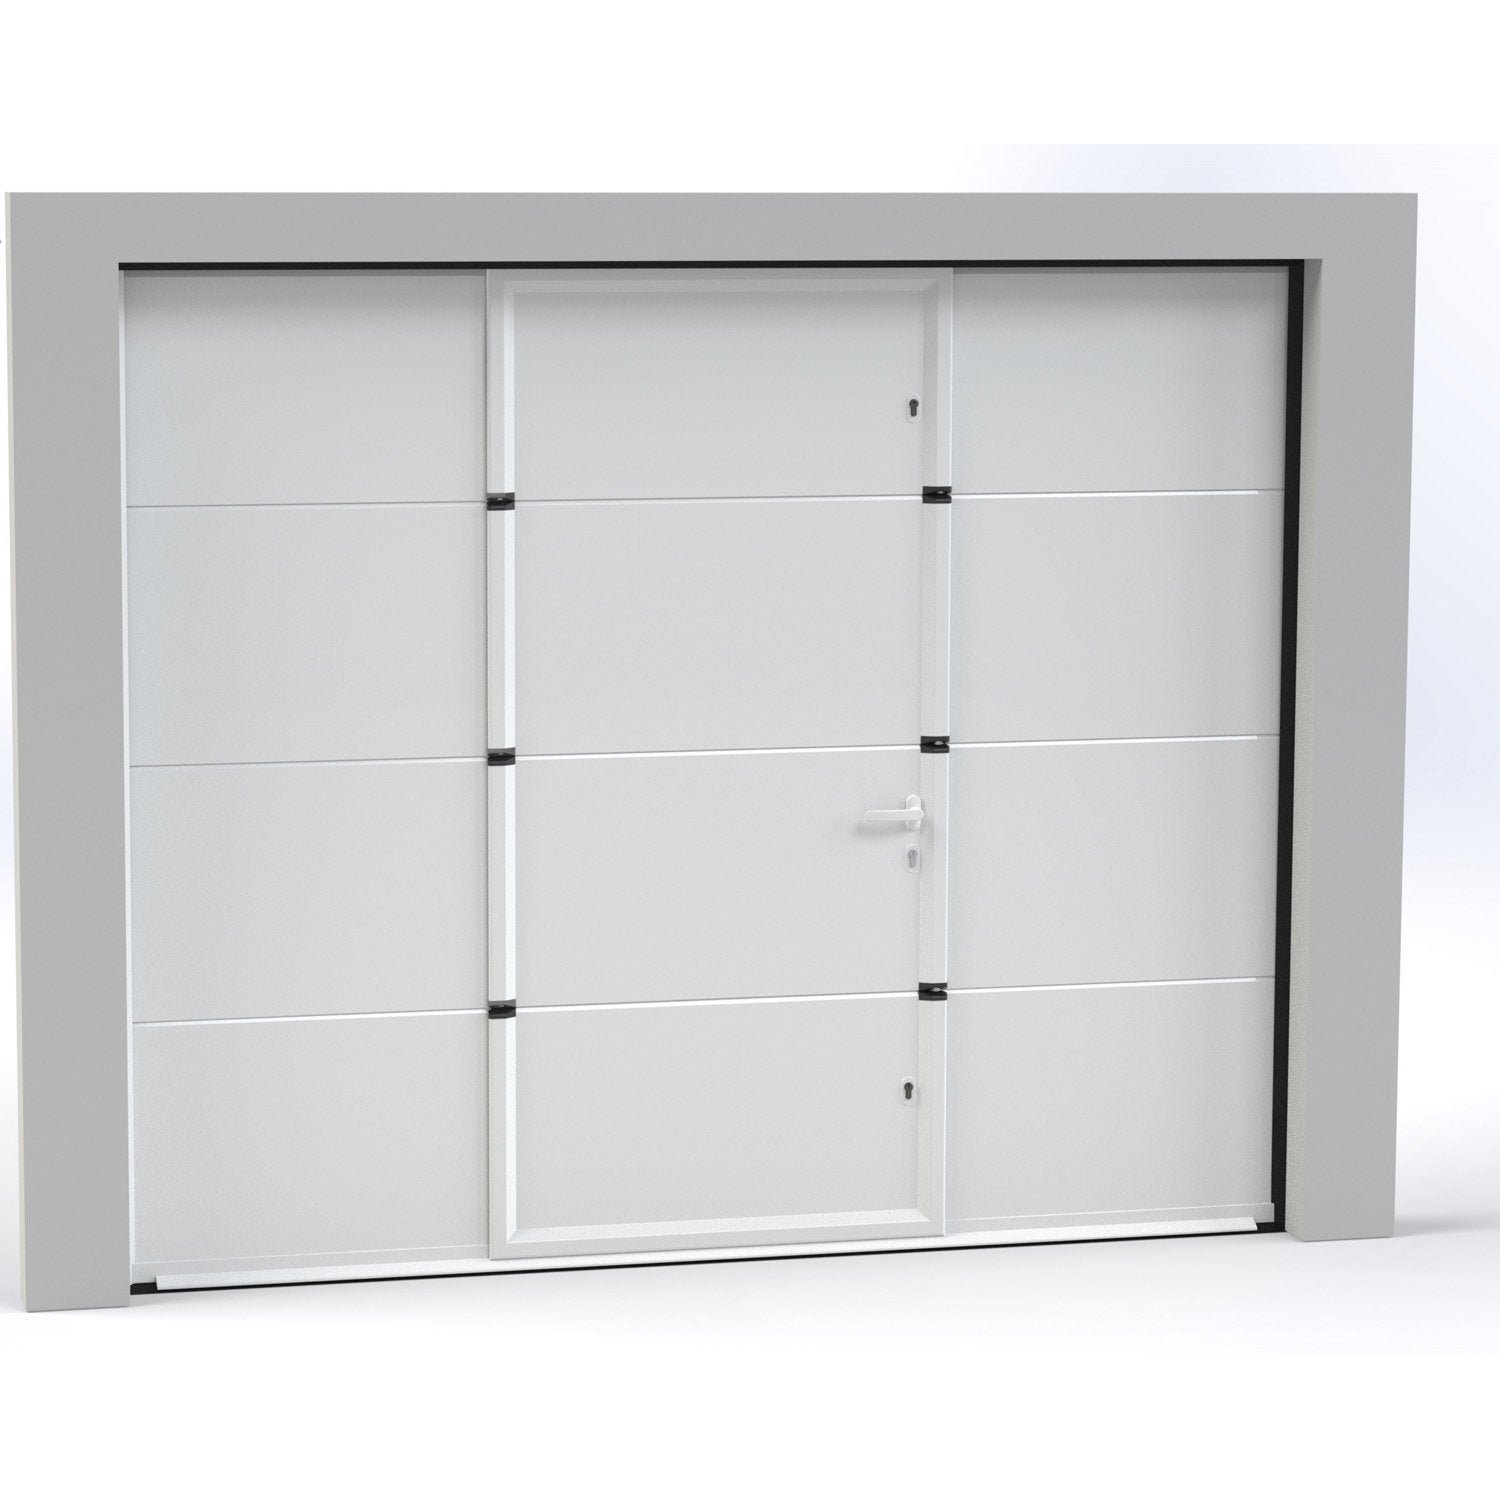 Porte De Garage Sectionnelle Motoris E Artens Essentiel 200x300cm Avec Portillon Leroy Merlin